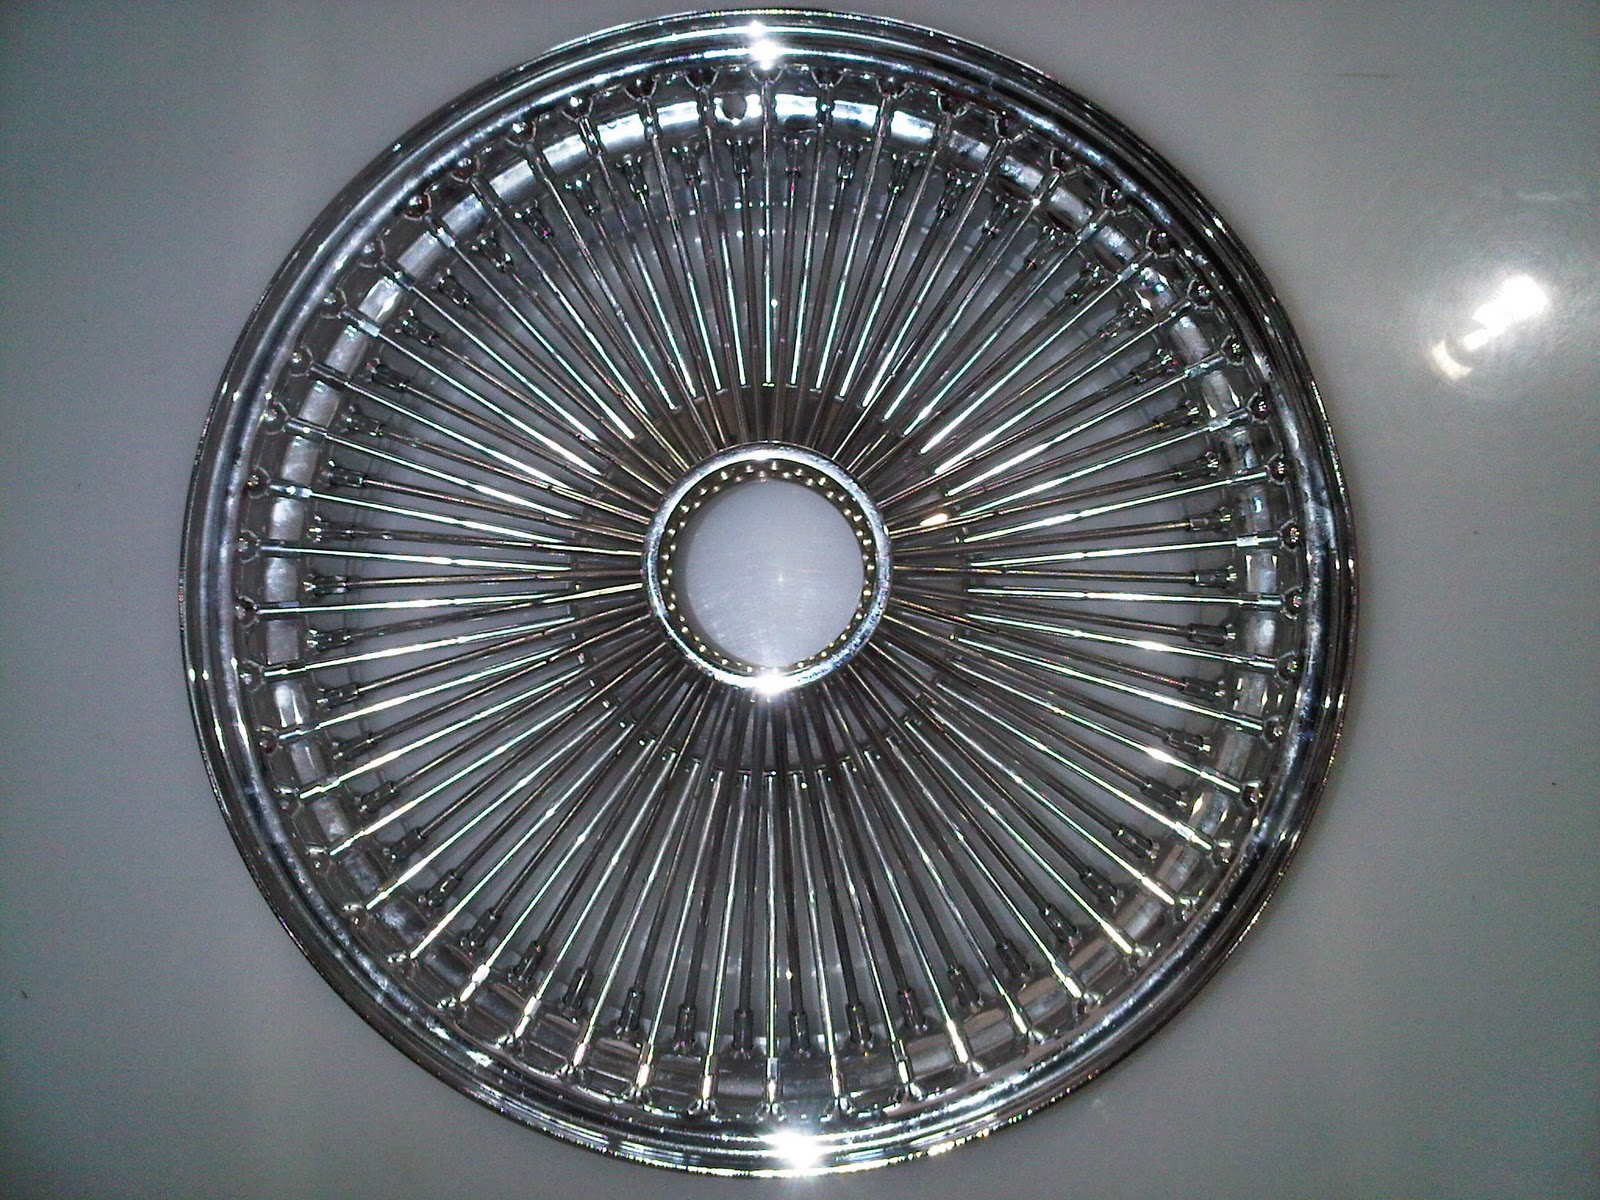 upku lowayu jaya for sale velg jari2 ring 18x8 as tengah